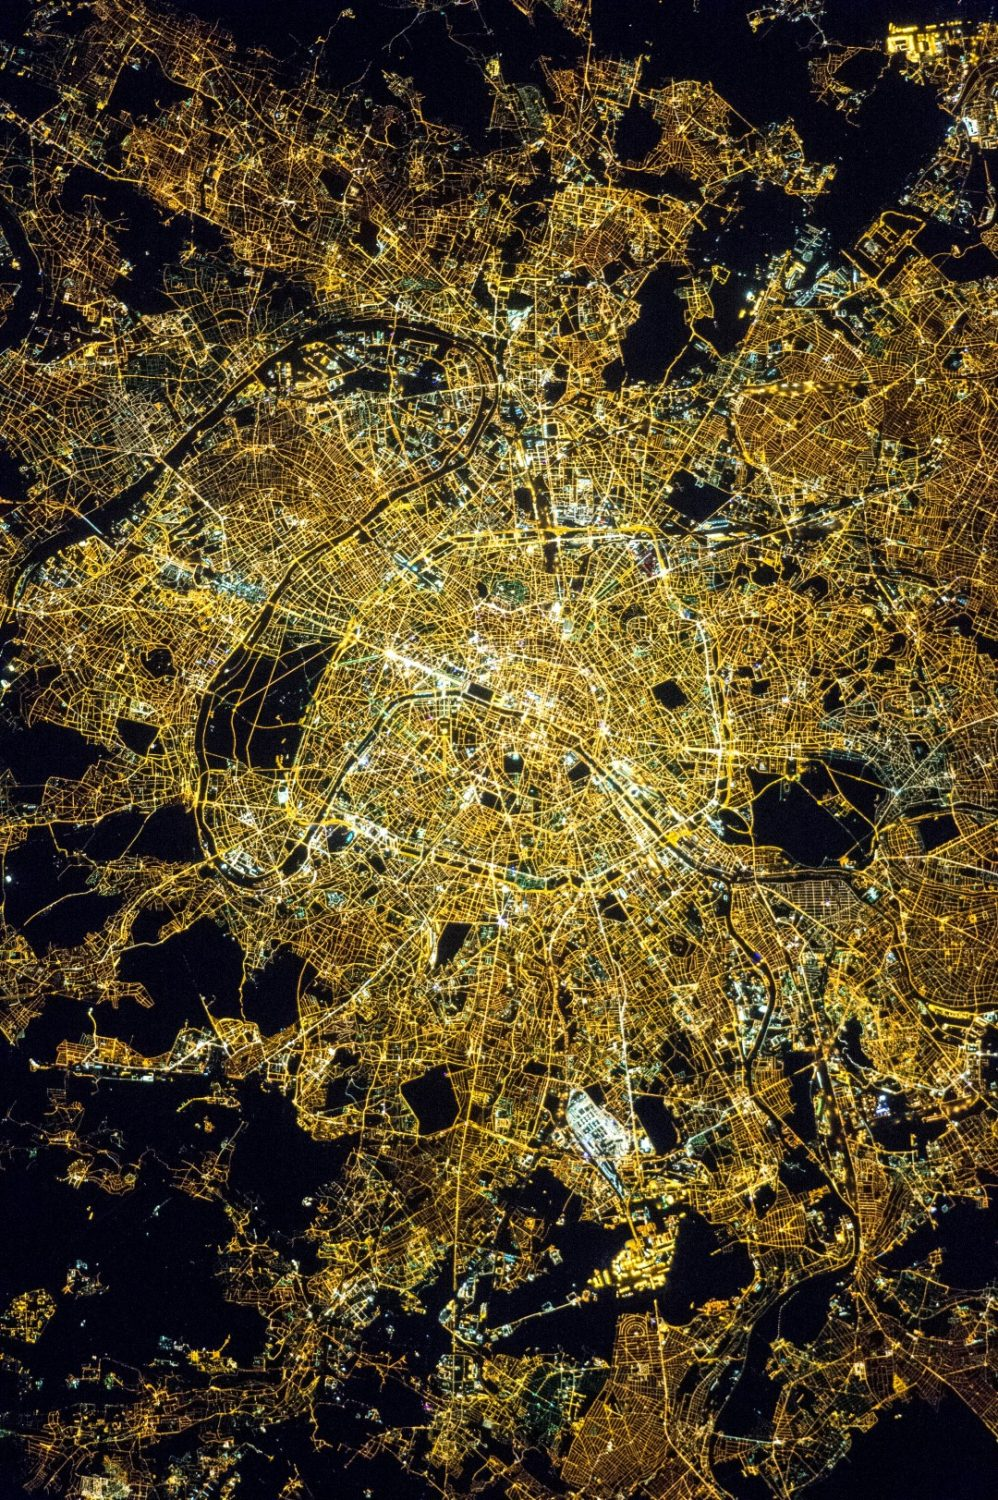 Paris at night | NASA | IGS Mag